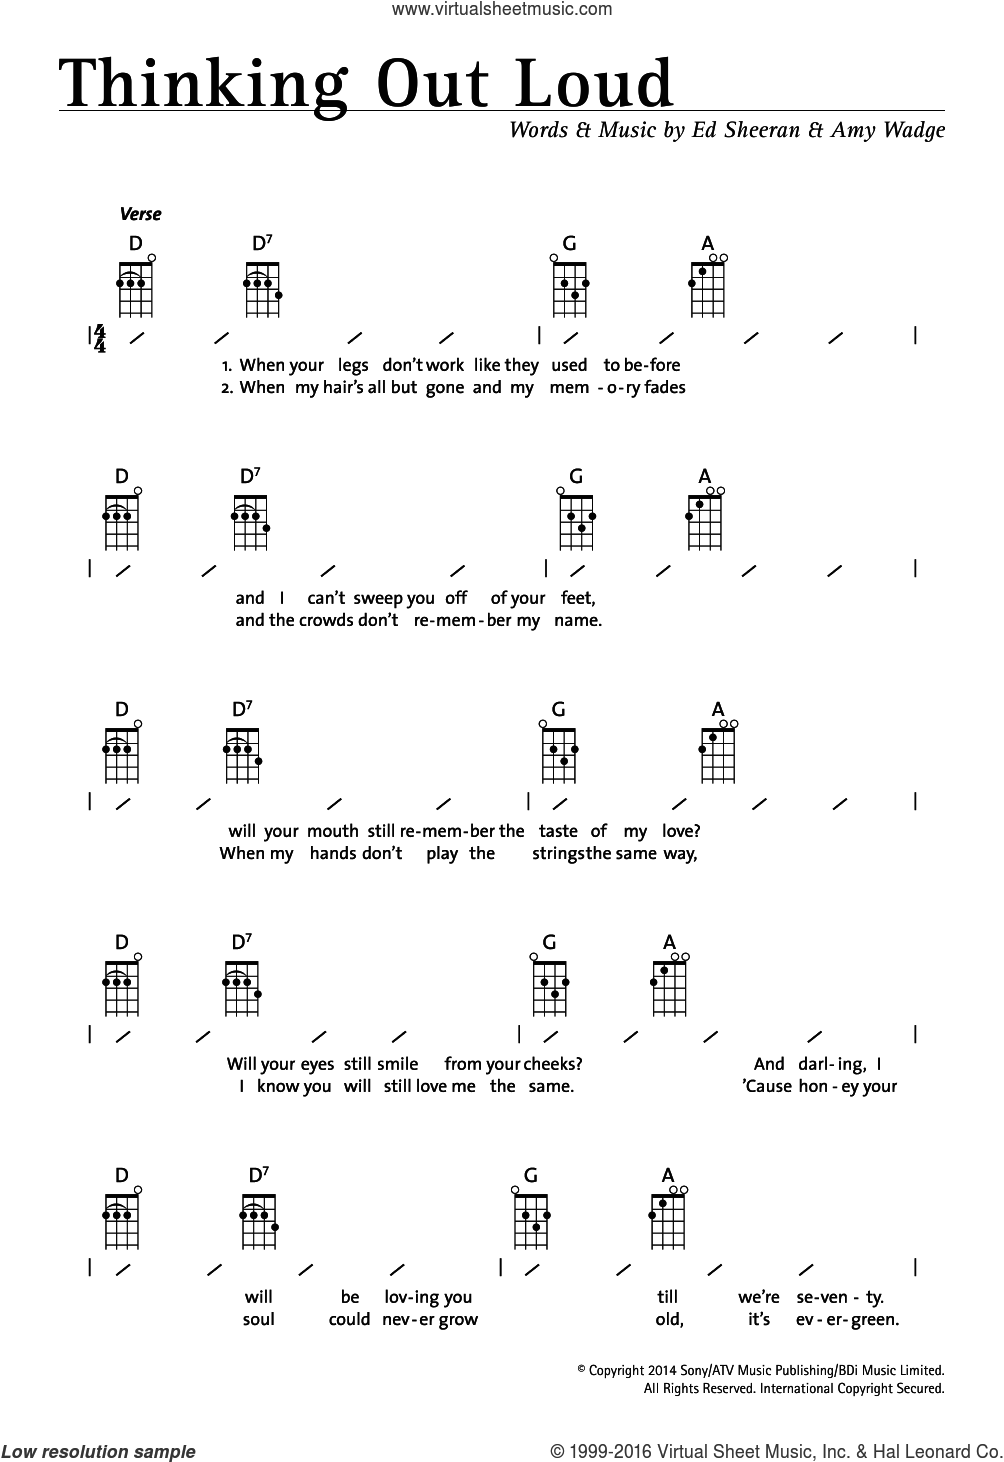 Thinking Out Loud sheet music for ukulele (chords) by Ed Sheeran and Amy Wadge, intermediate skill level